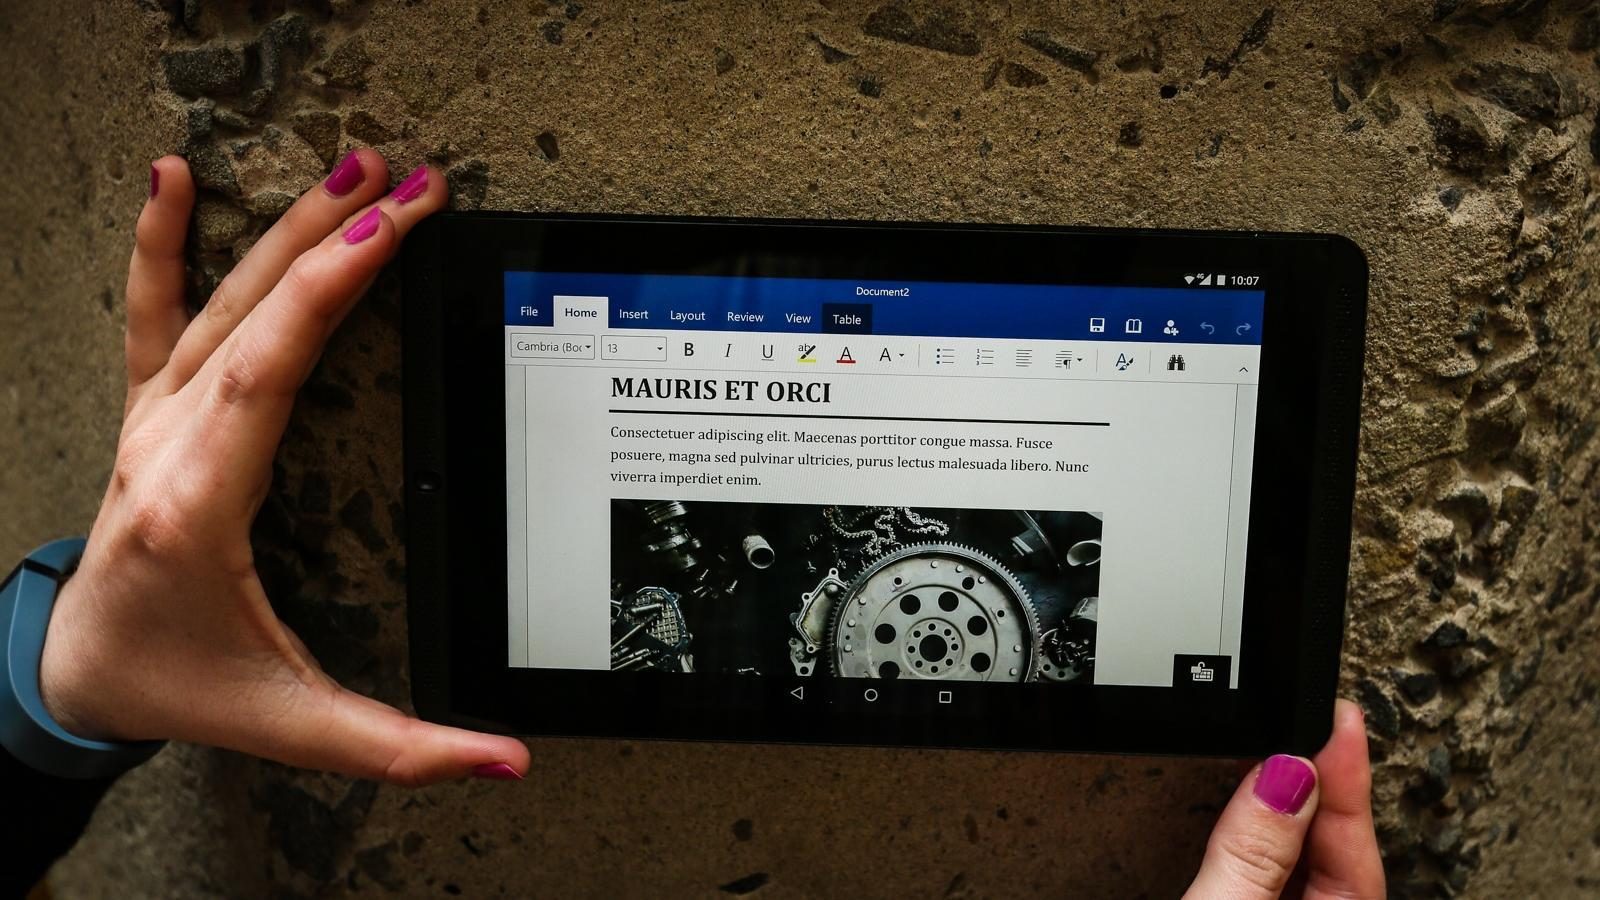 Microsoft doubles down on Office apps, services for Android tablets